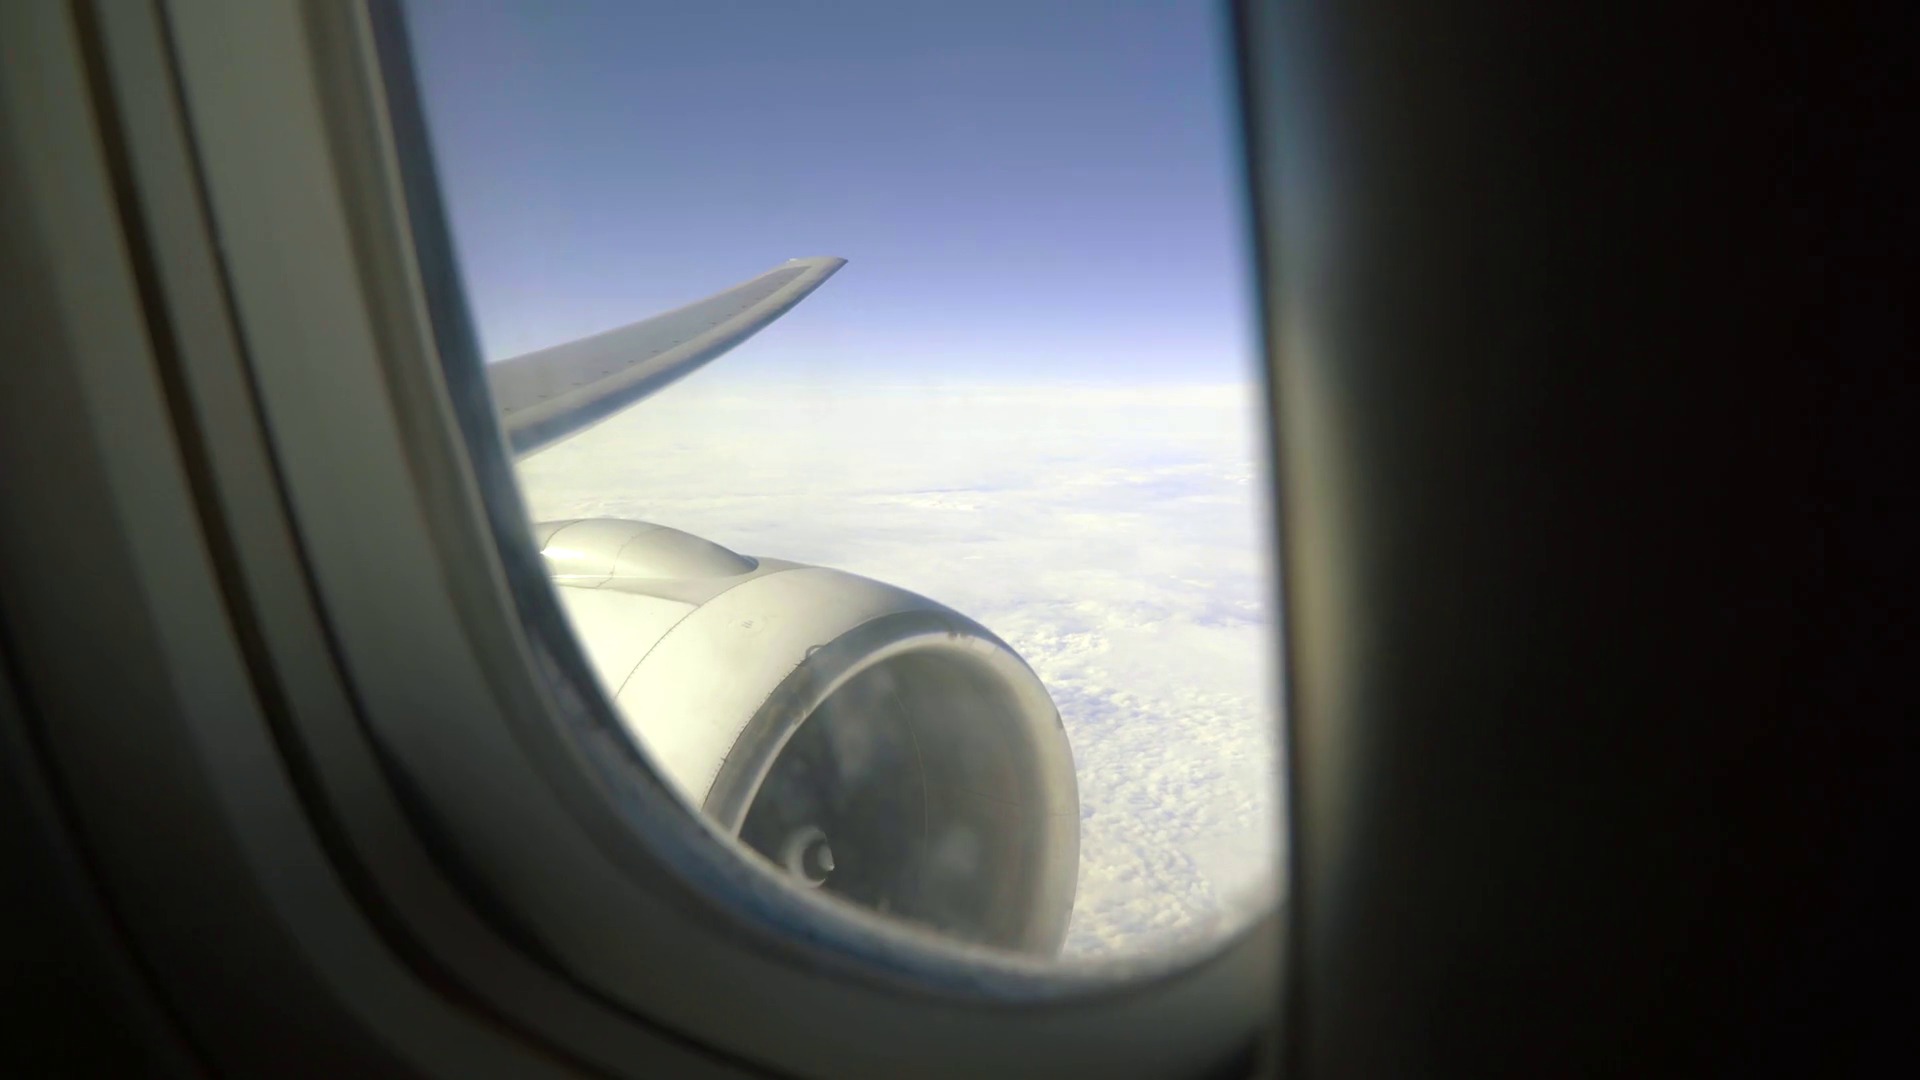 Leaning aircraft passenger window view of airplane turbine above ...